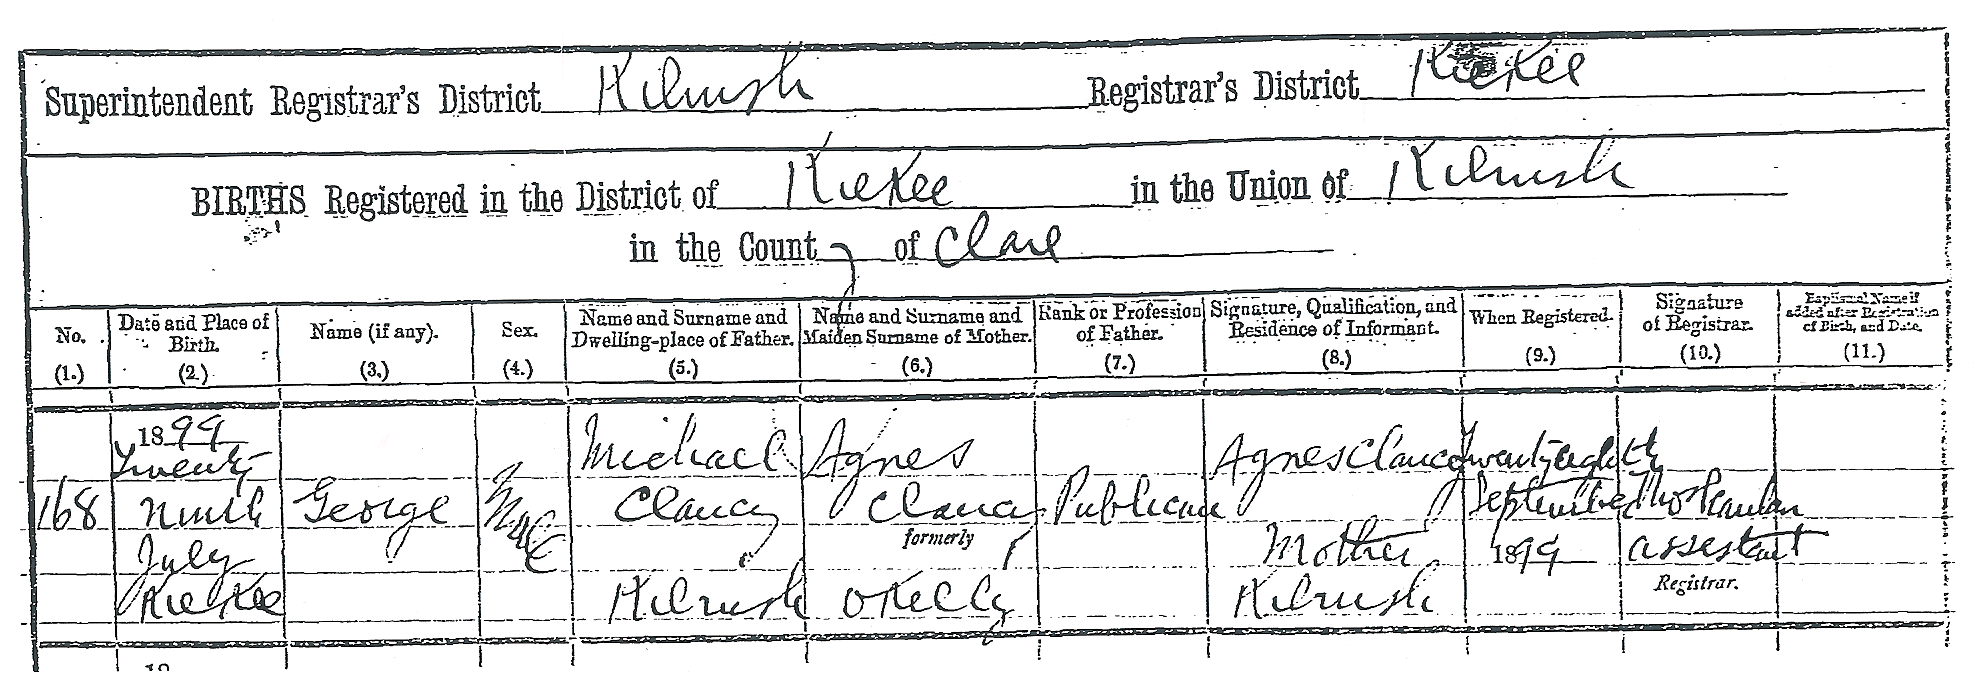 Irish civil registration how to find records of bmds etc birth record 565kb aiddatafo Images